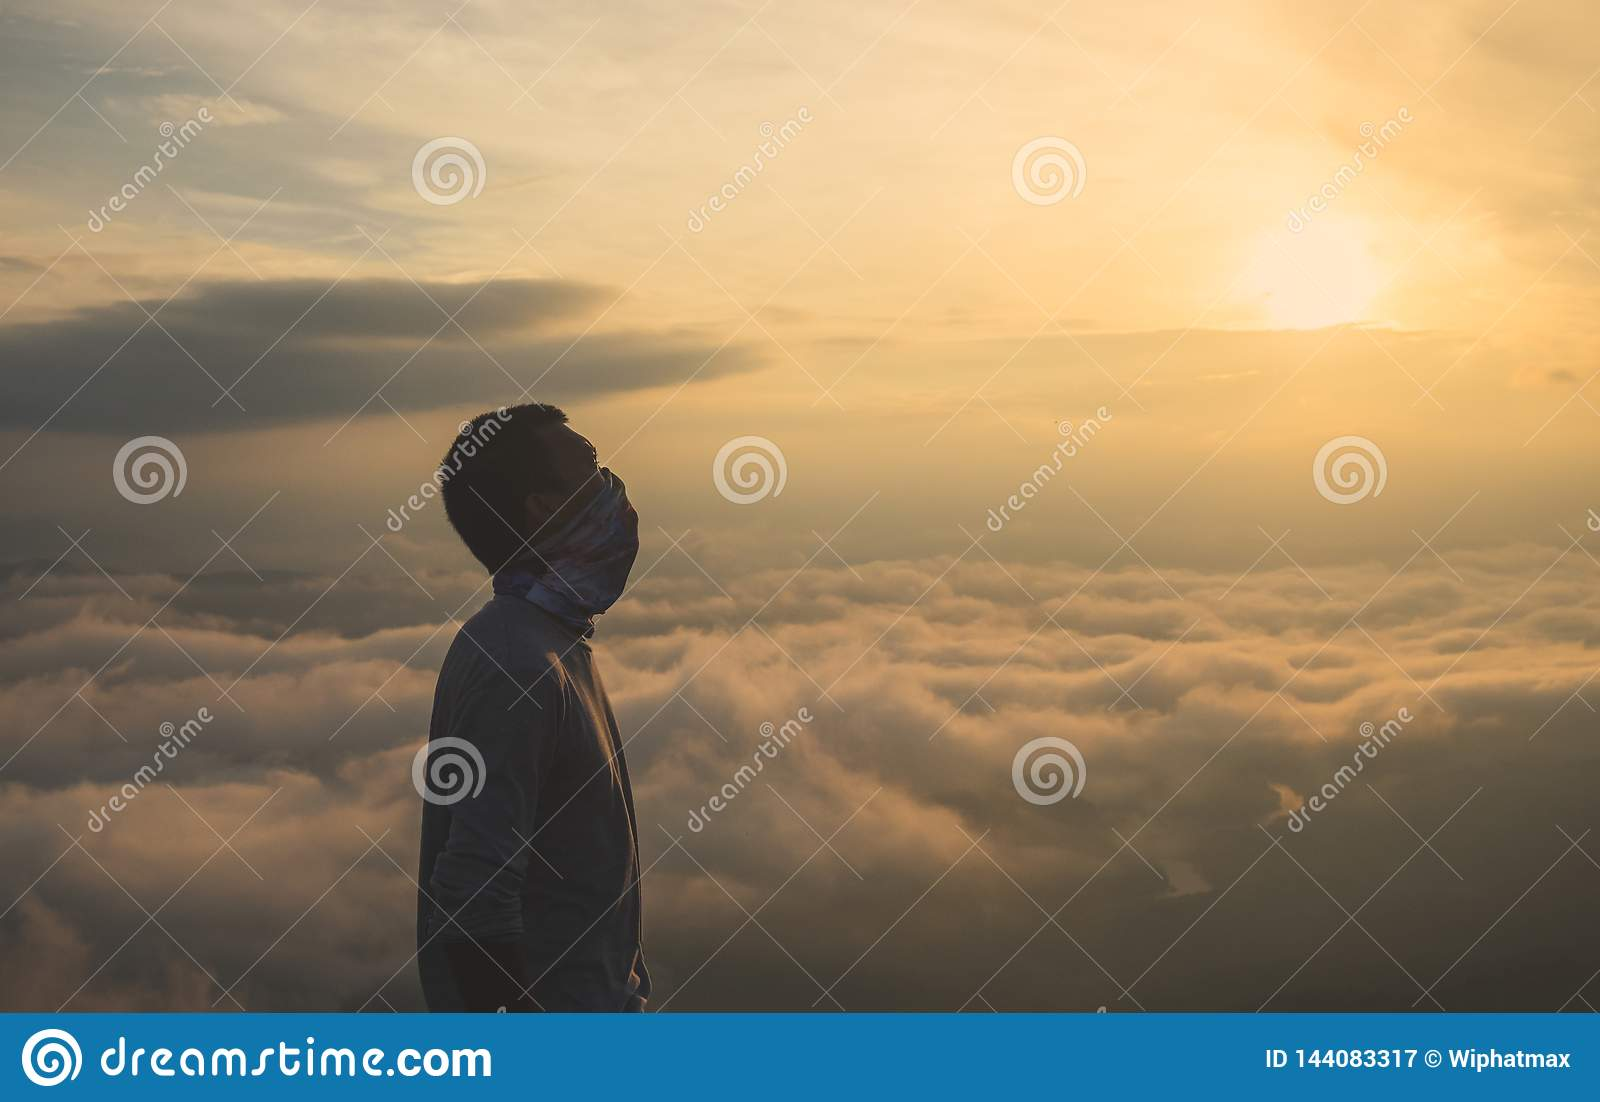 Silhouette of male in sunrise background.